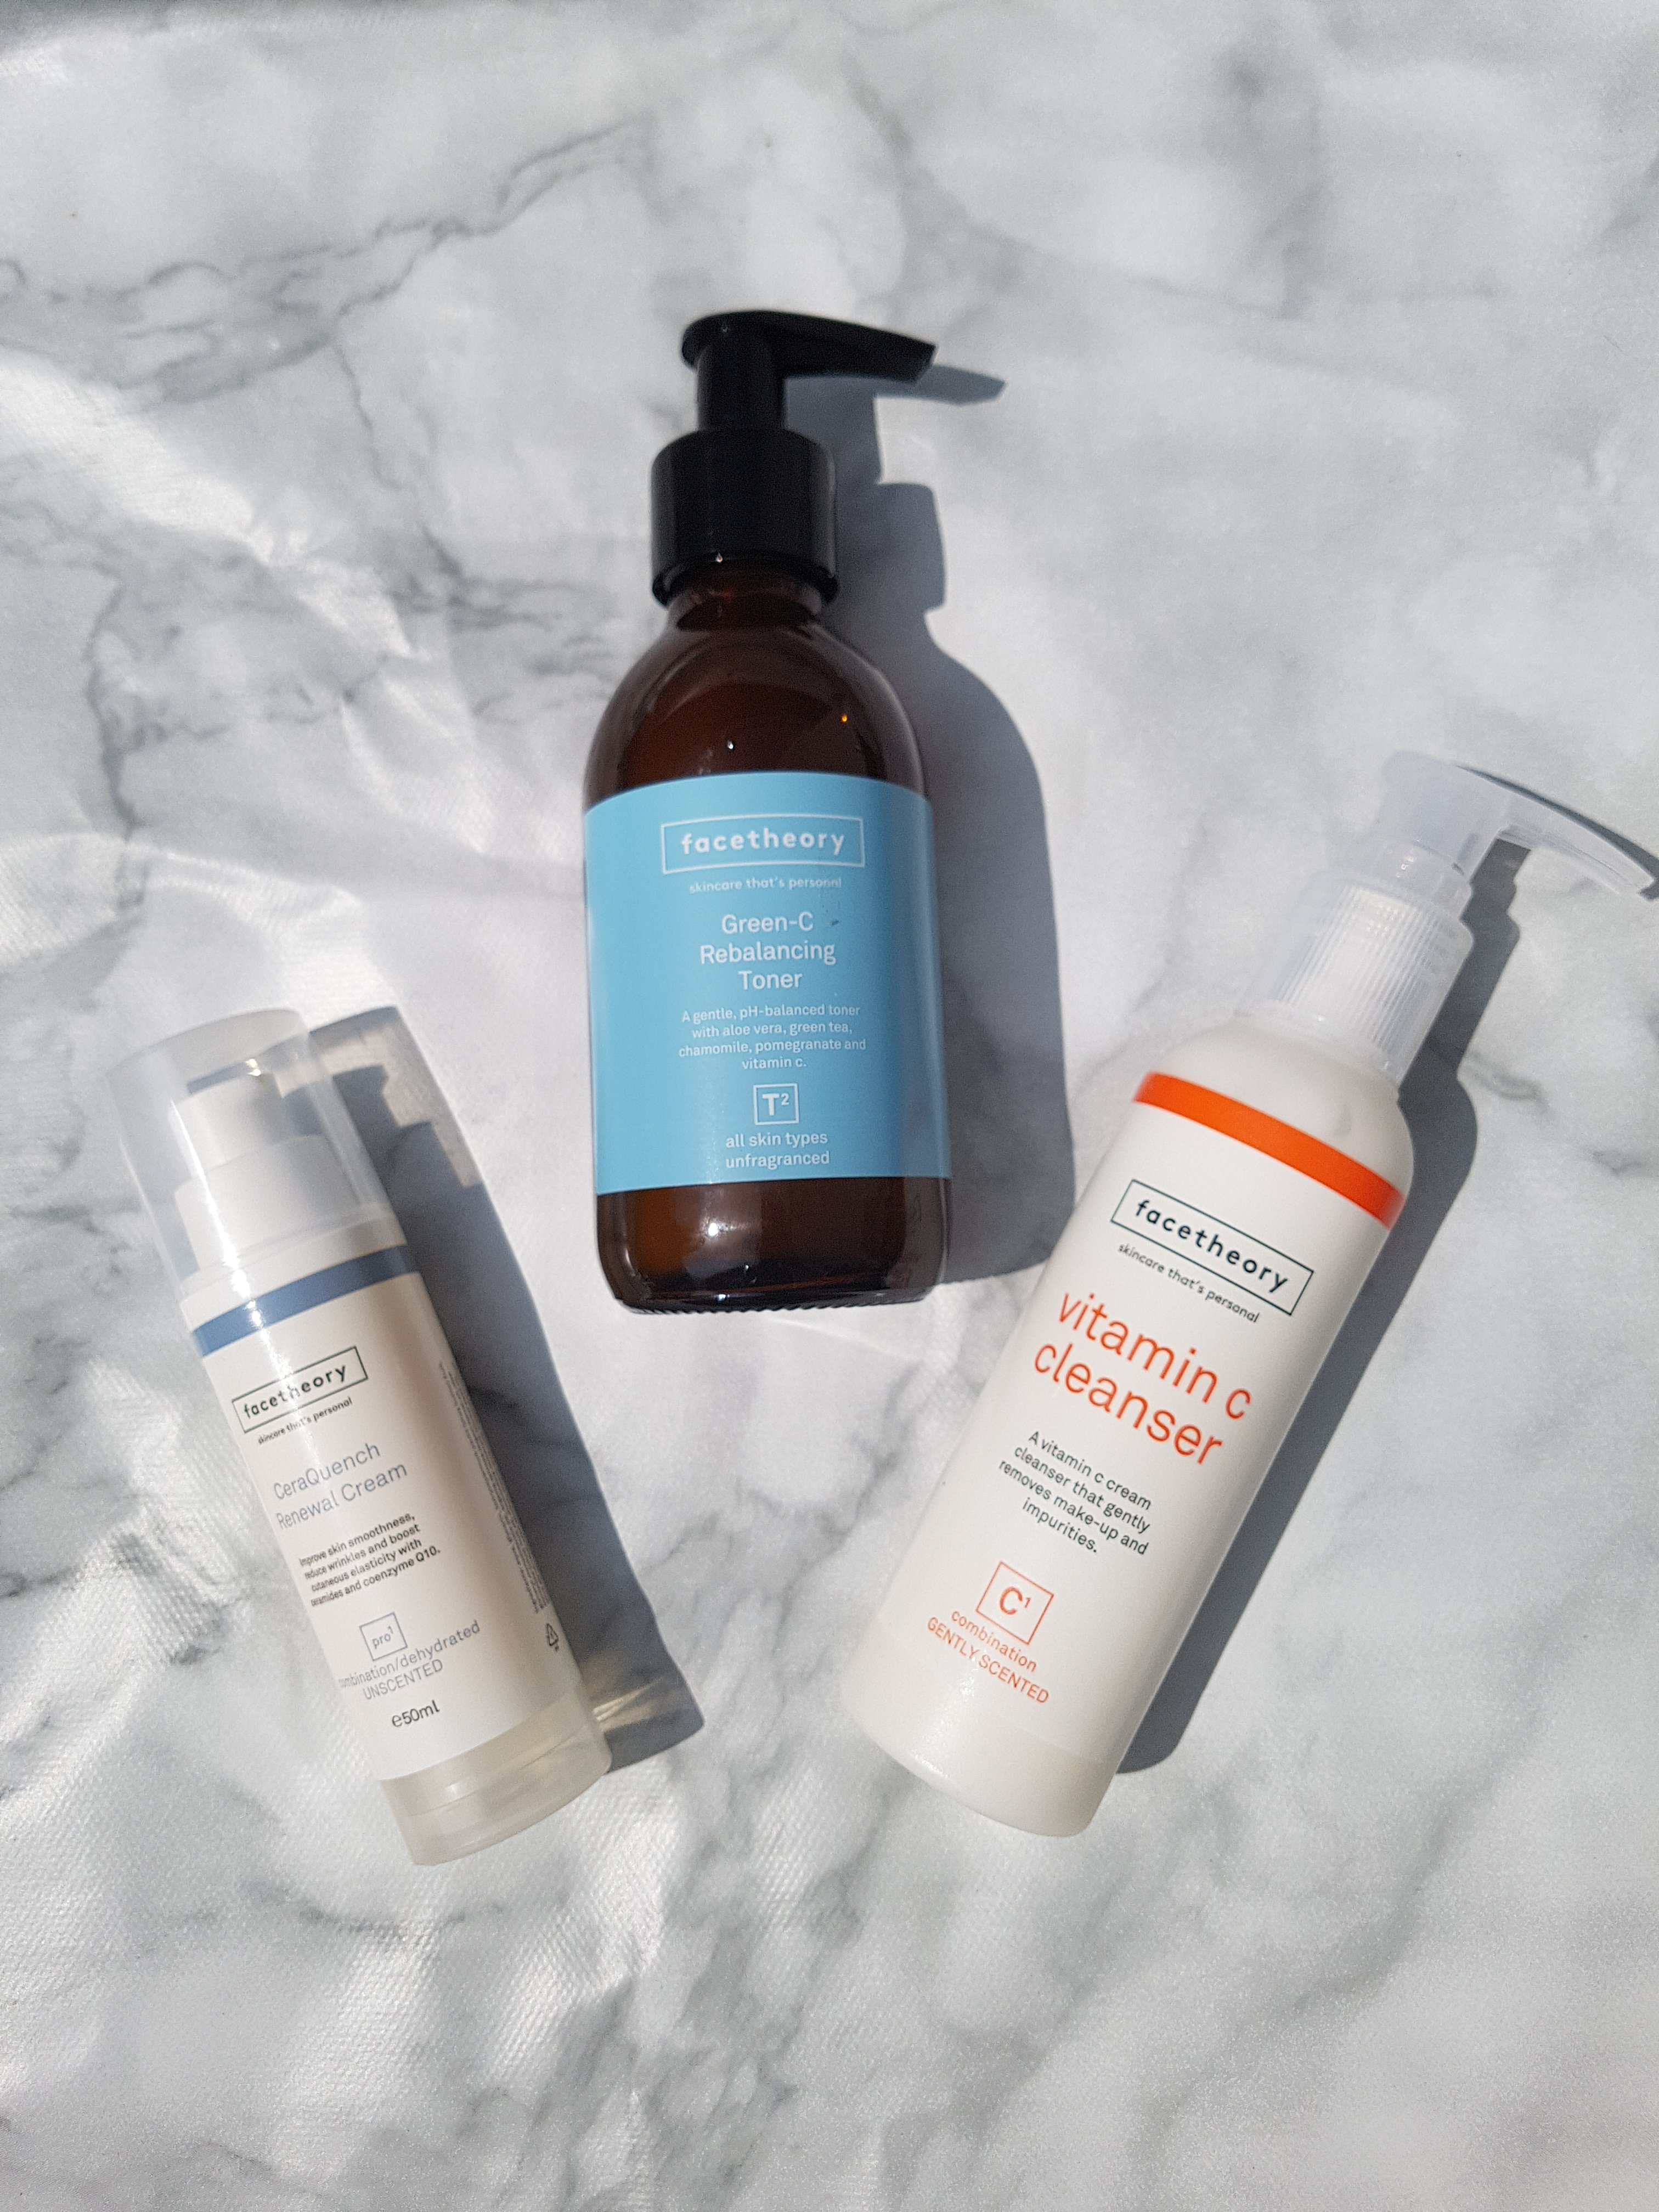 Face Theory skincare products